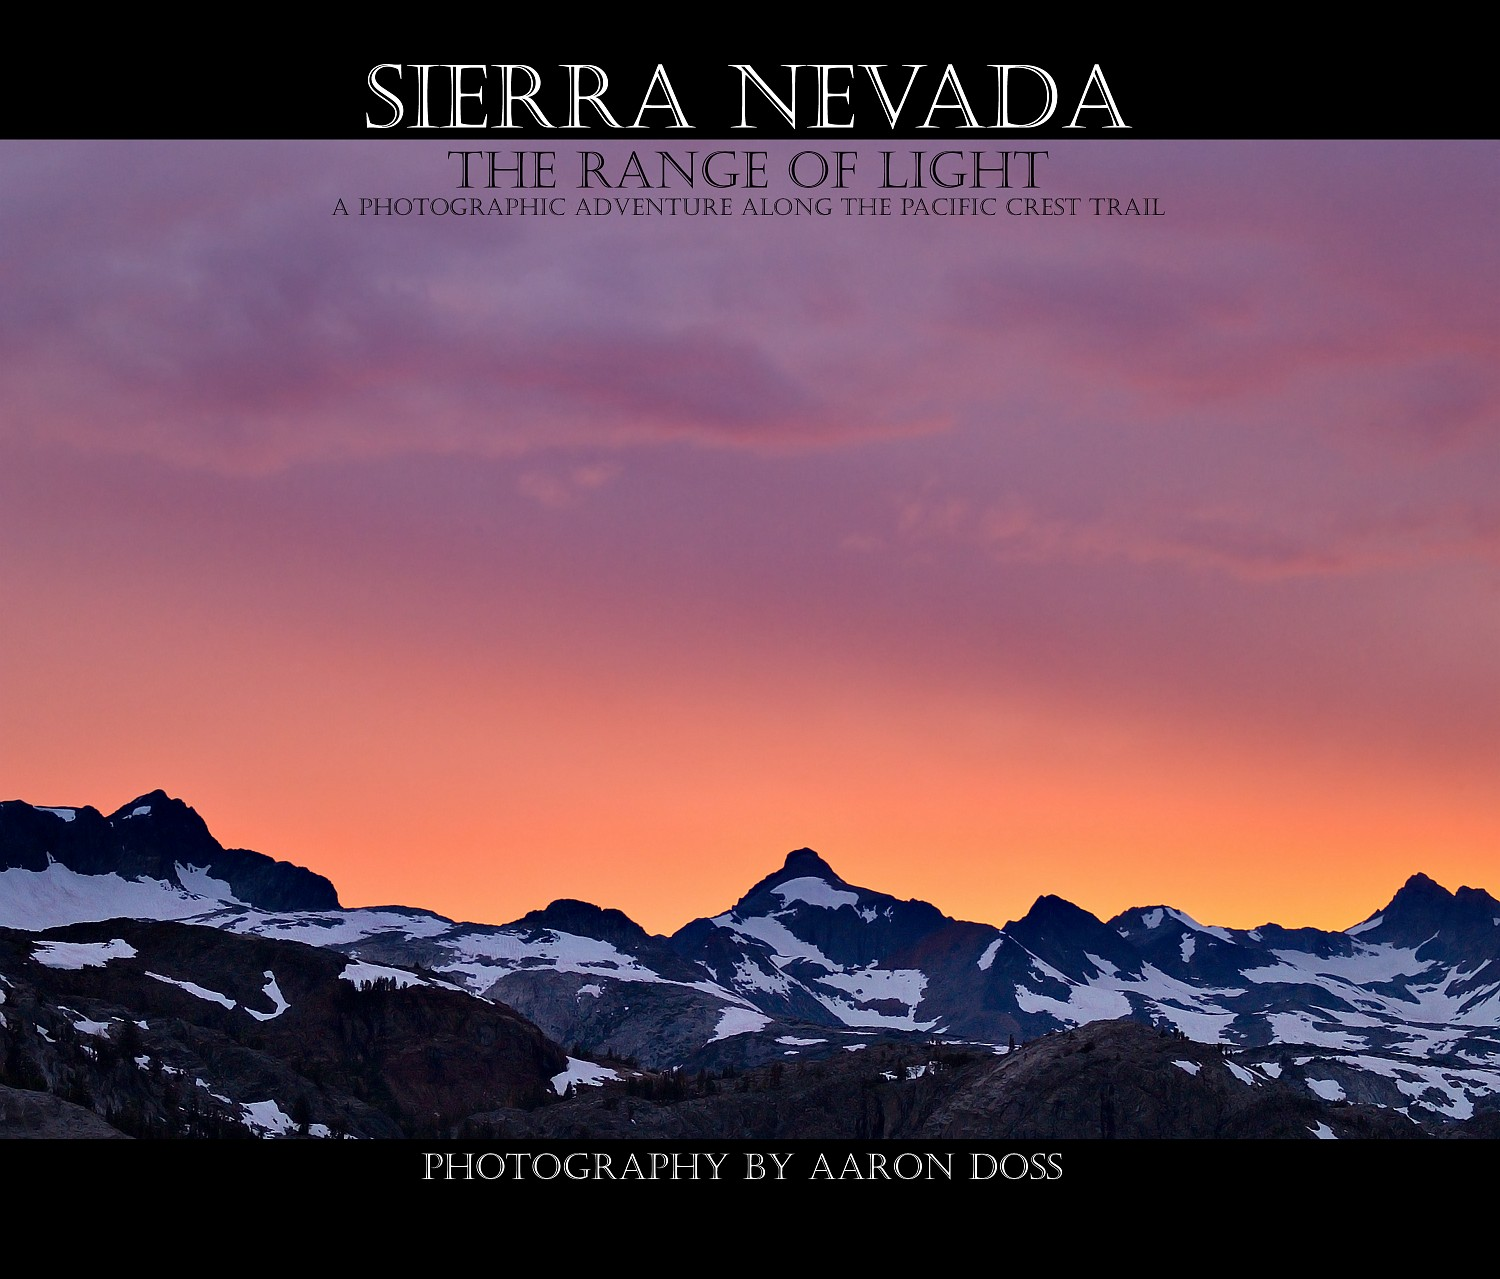 sierra nevada cover 2a.jpg